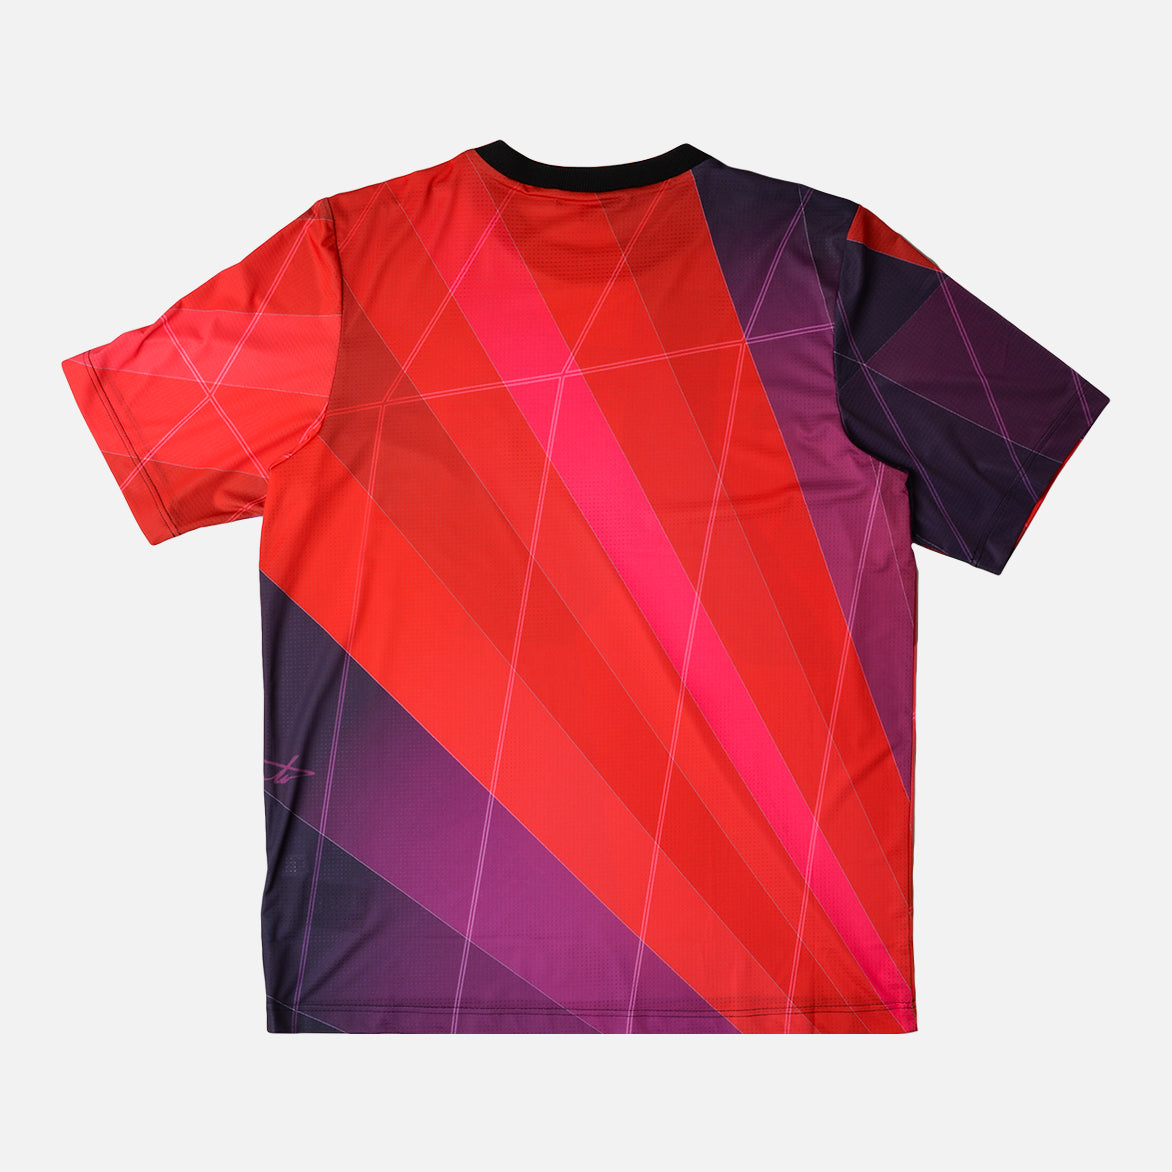 AOP FOOTBALL SHIRT - RED / PURPLE